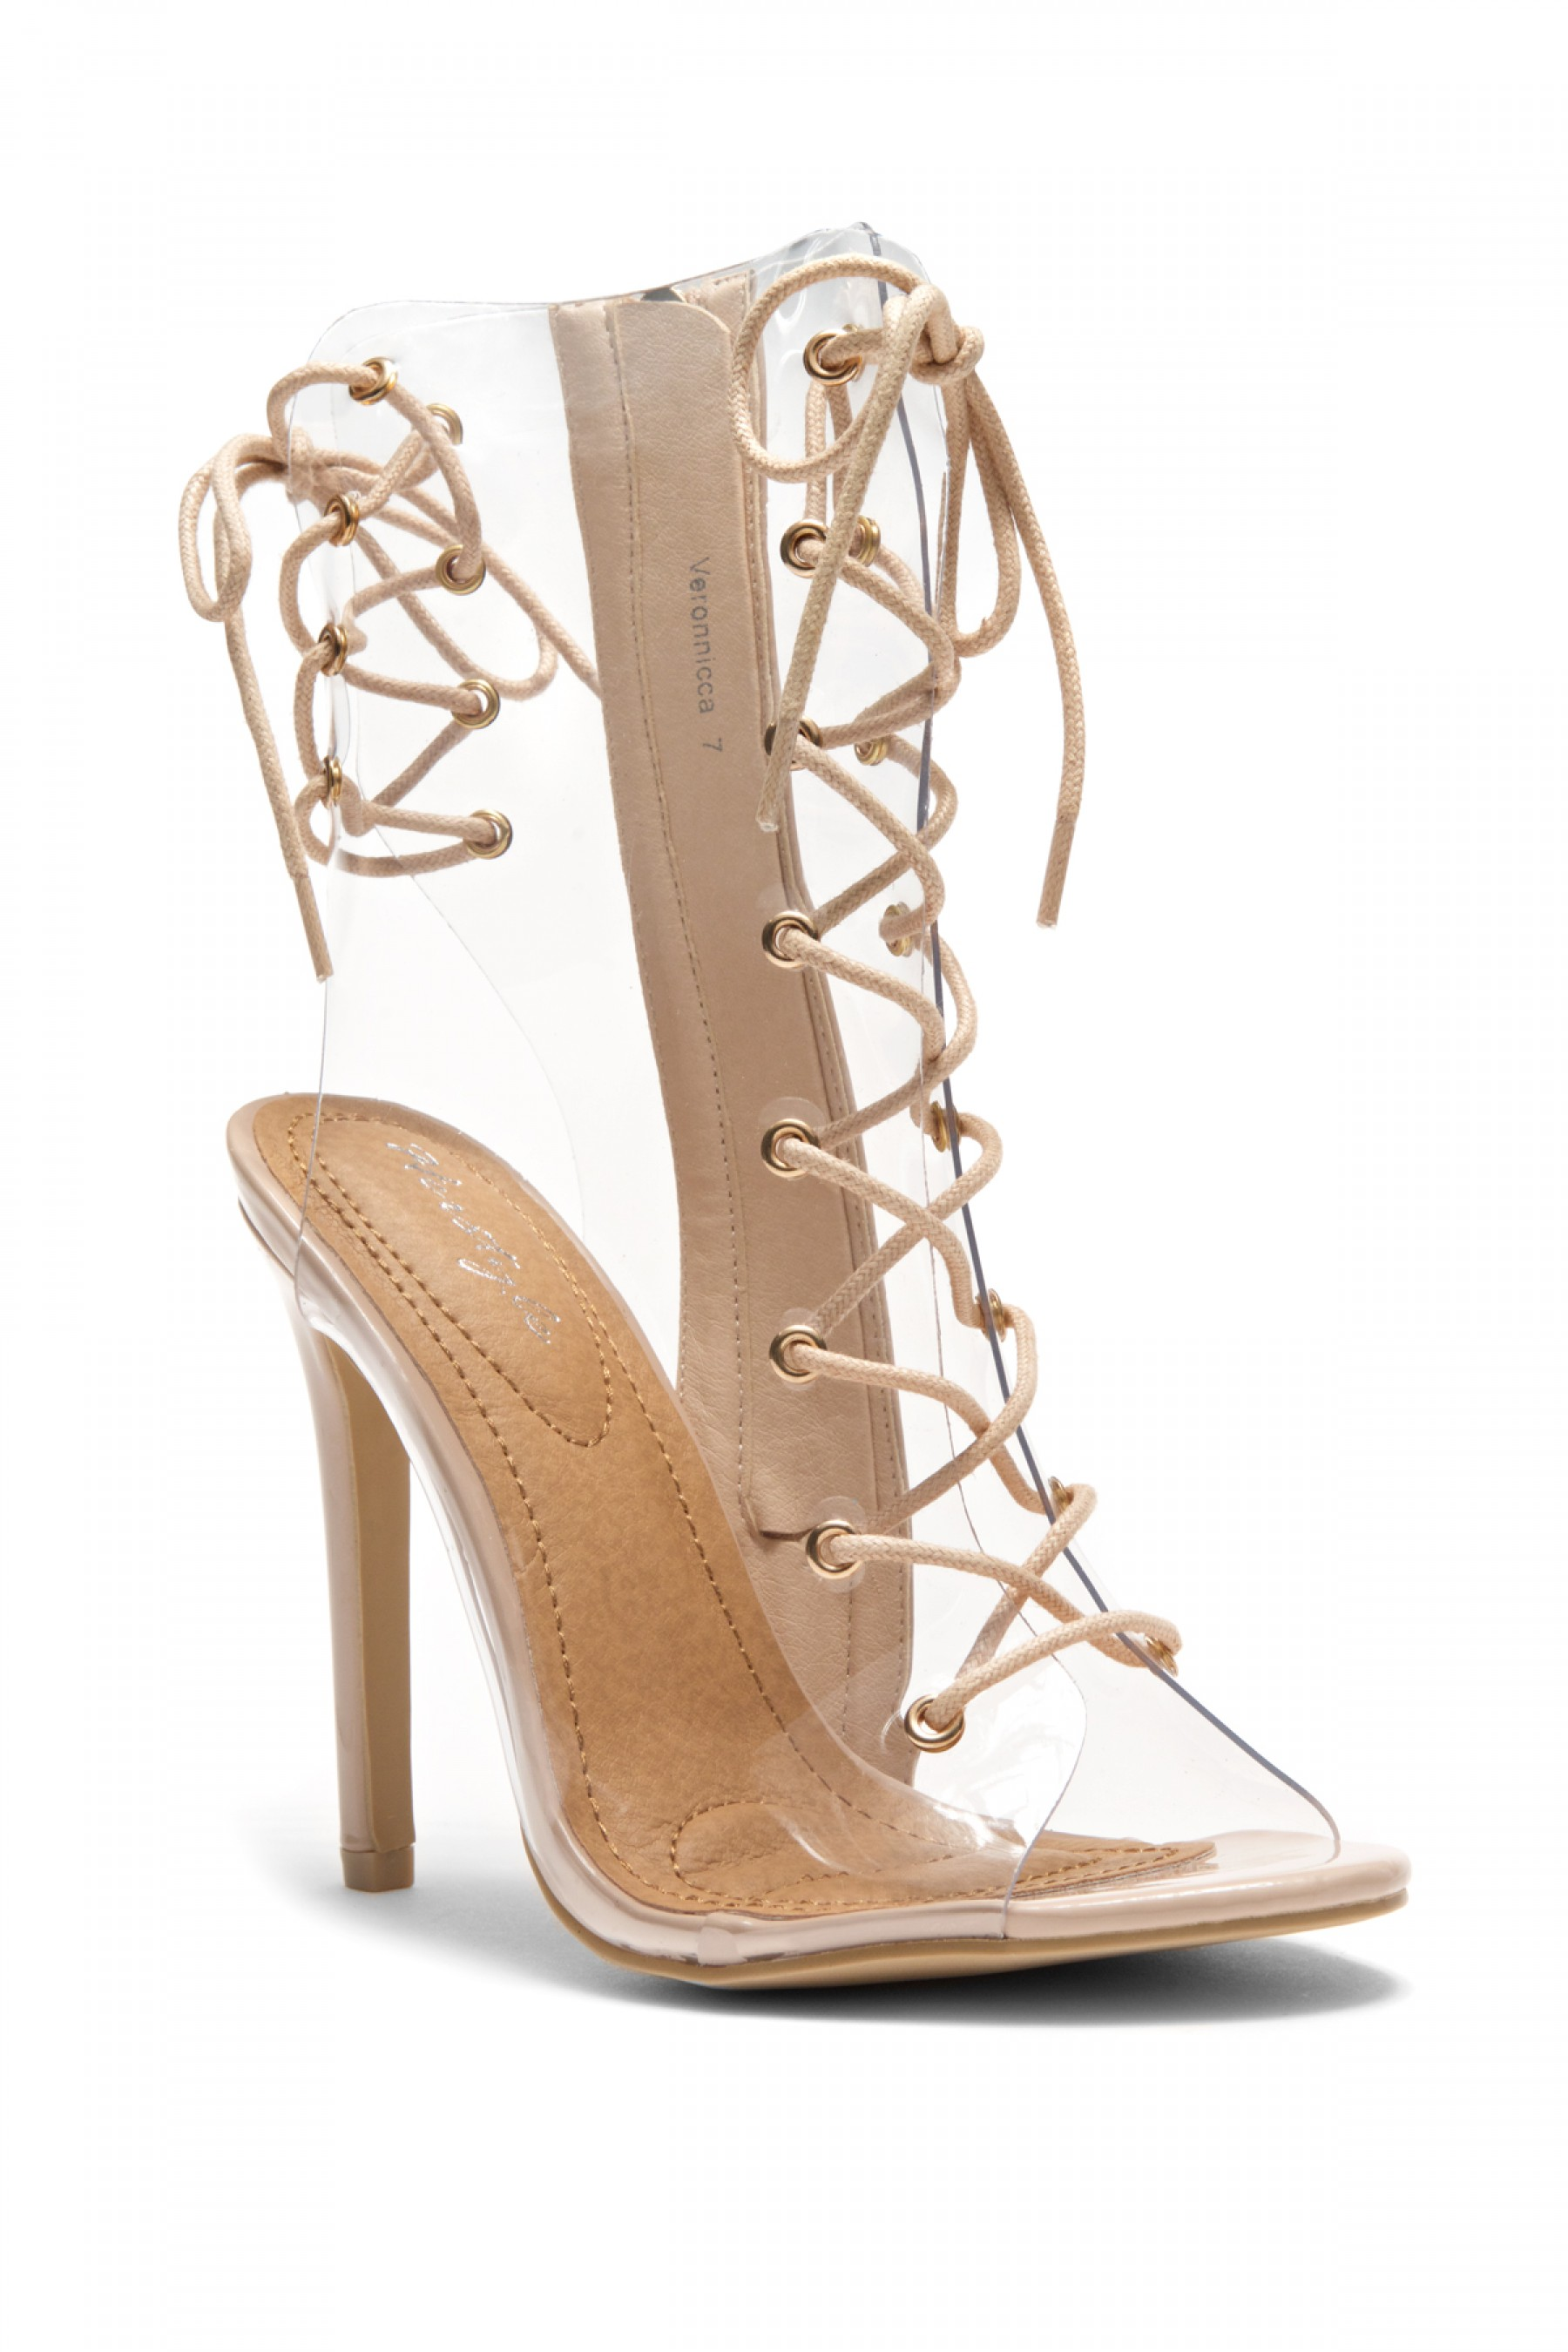 854680ebd23 HerStyle Veronnicca Lace Up Perspex Peep Toe Stiletto Boots (Clear ...